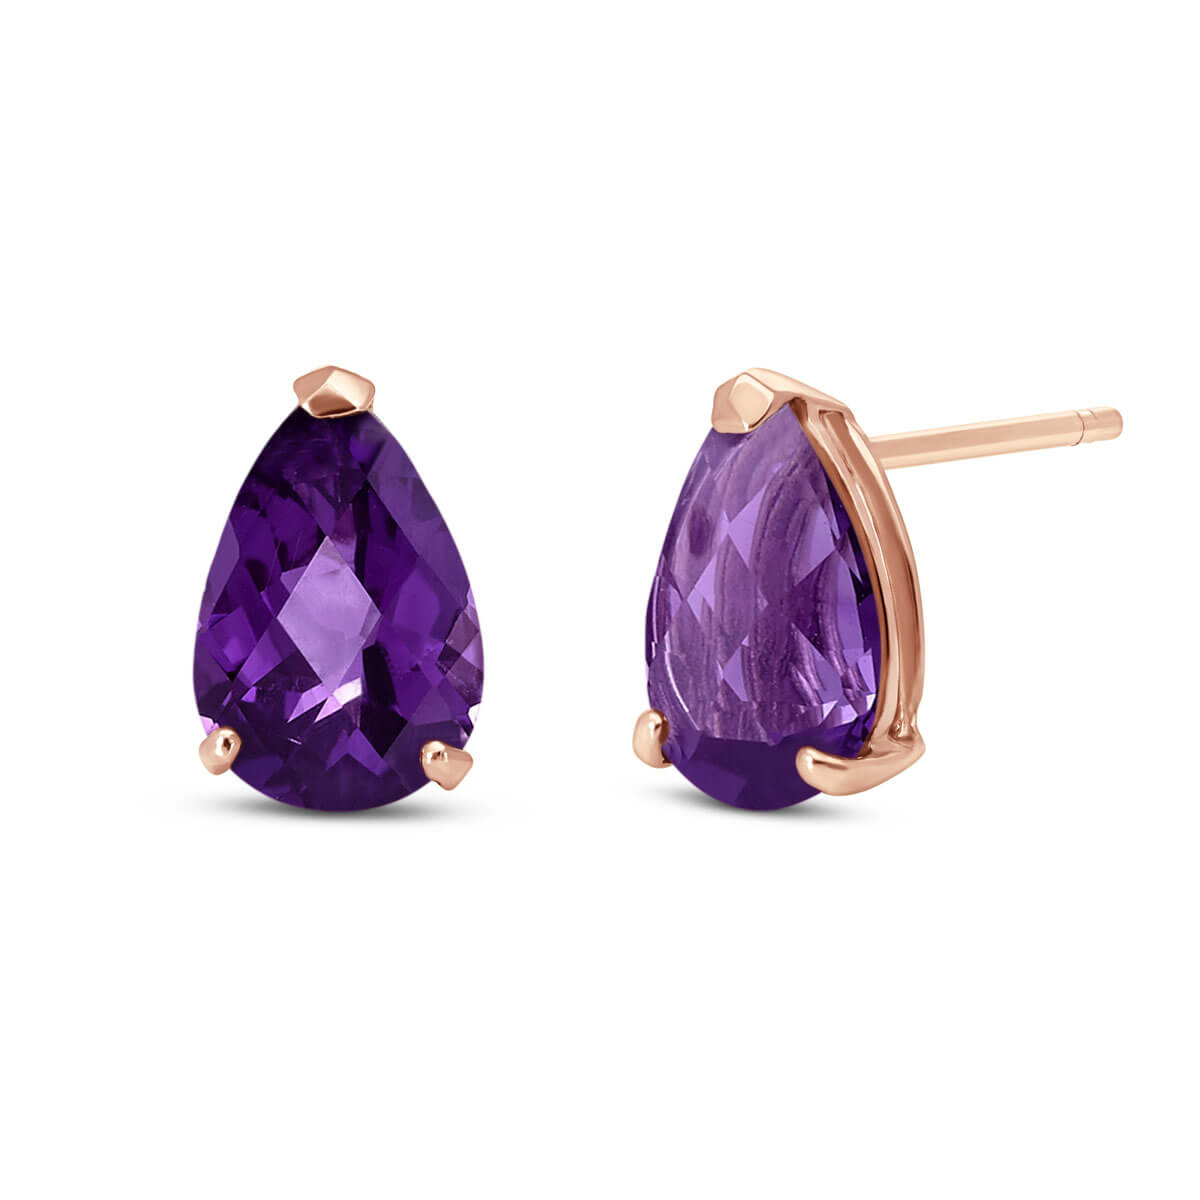 Amethyst Stud Earrings 3.15 ctw in 9ct Rose Gold